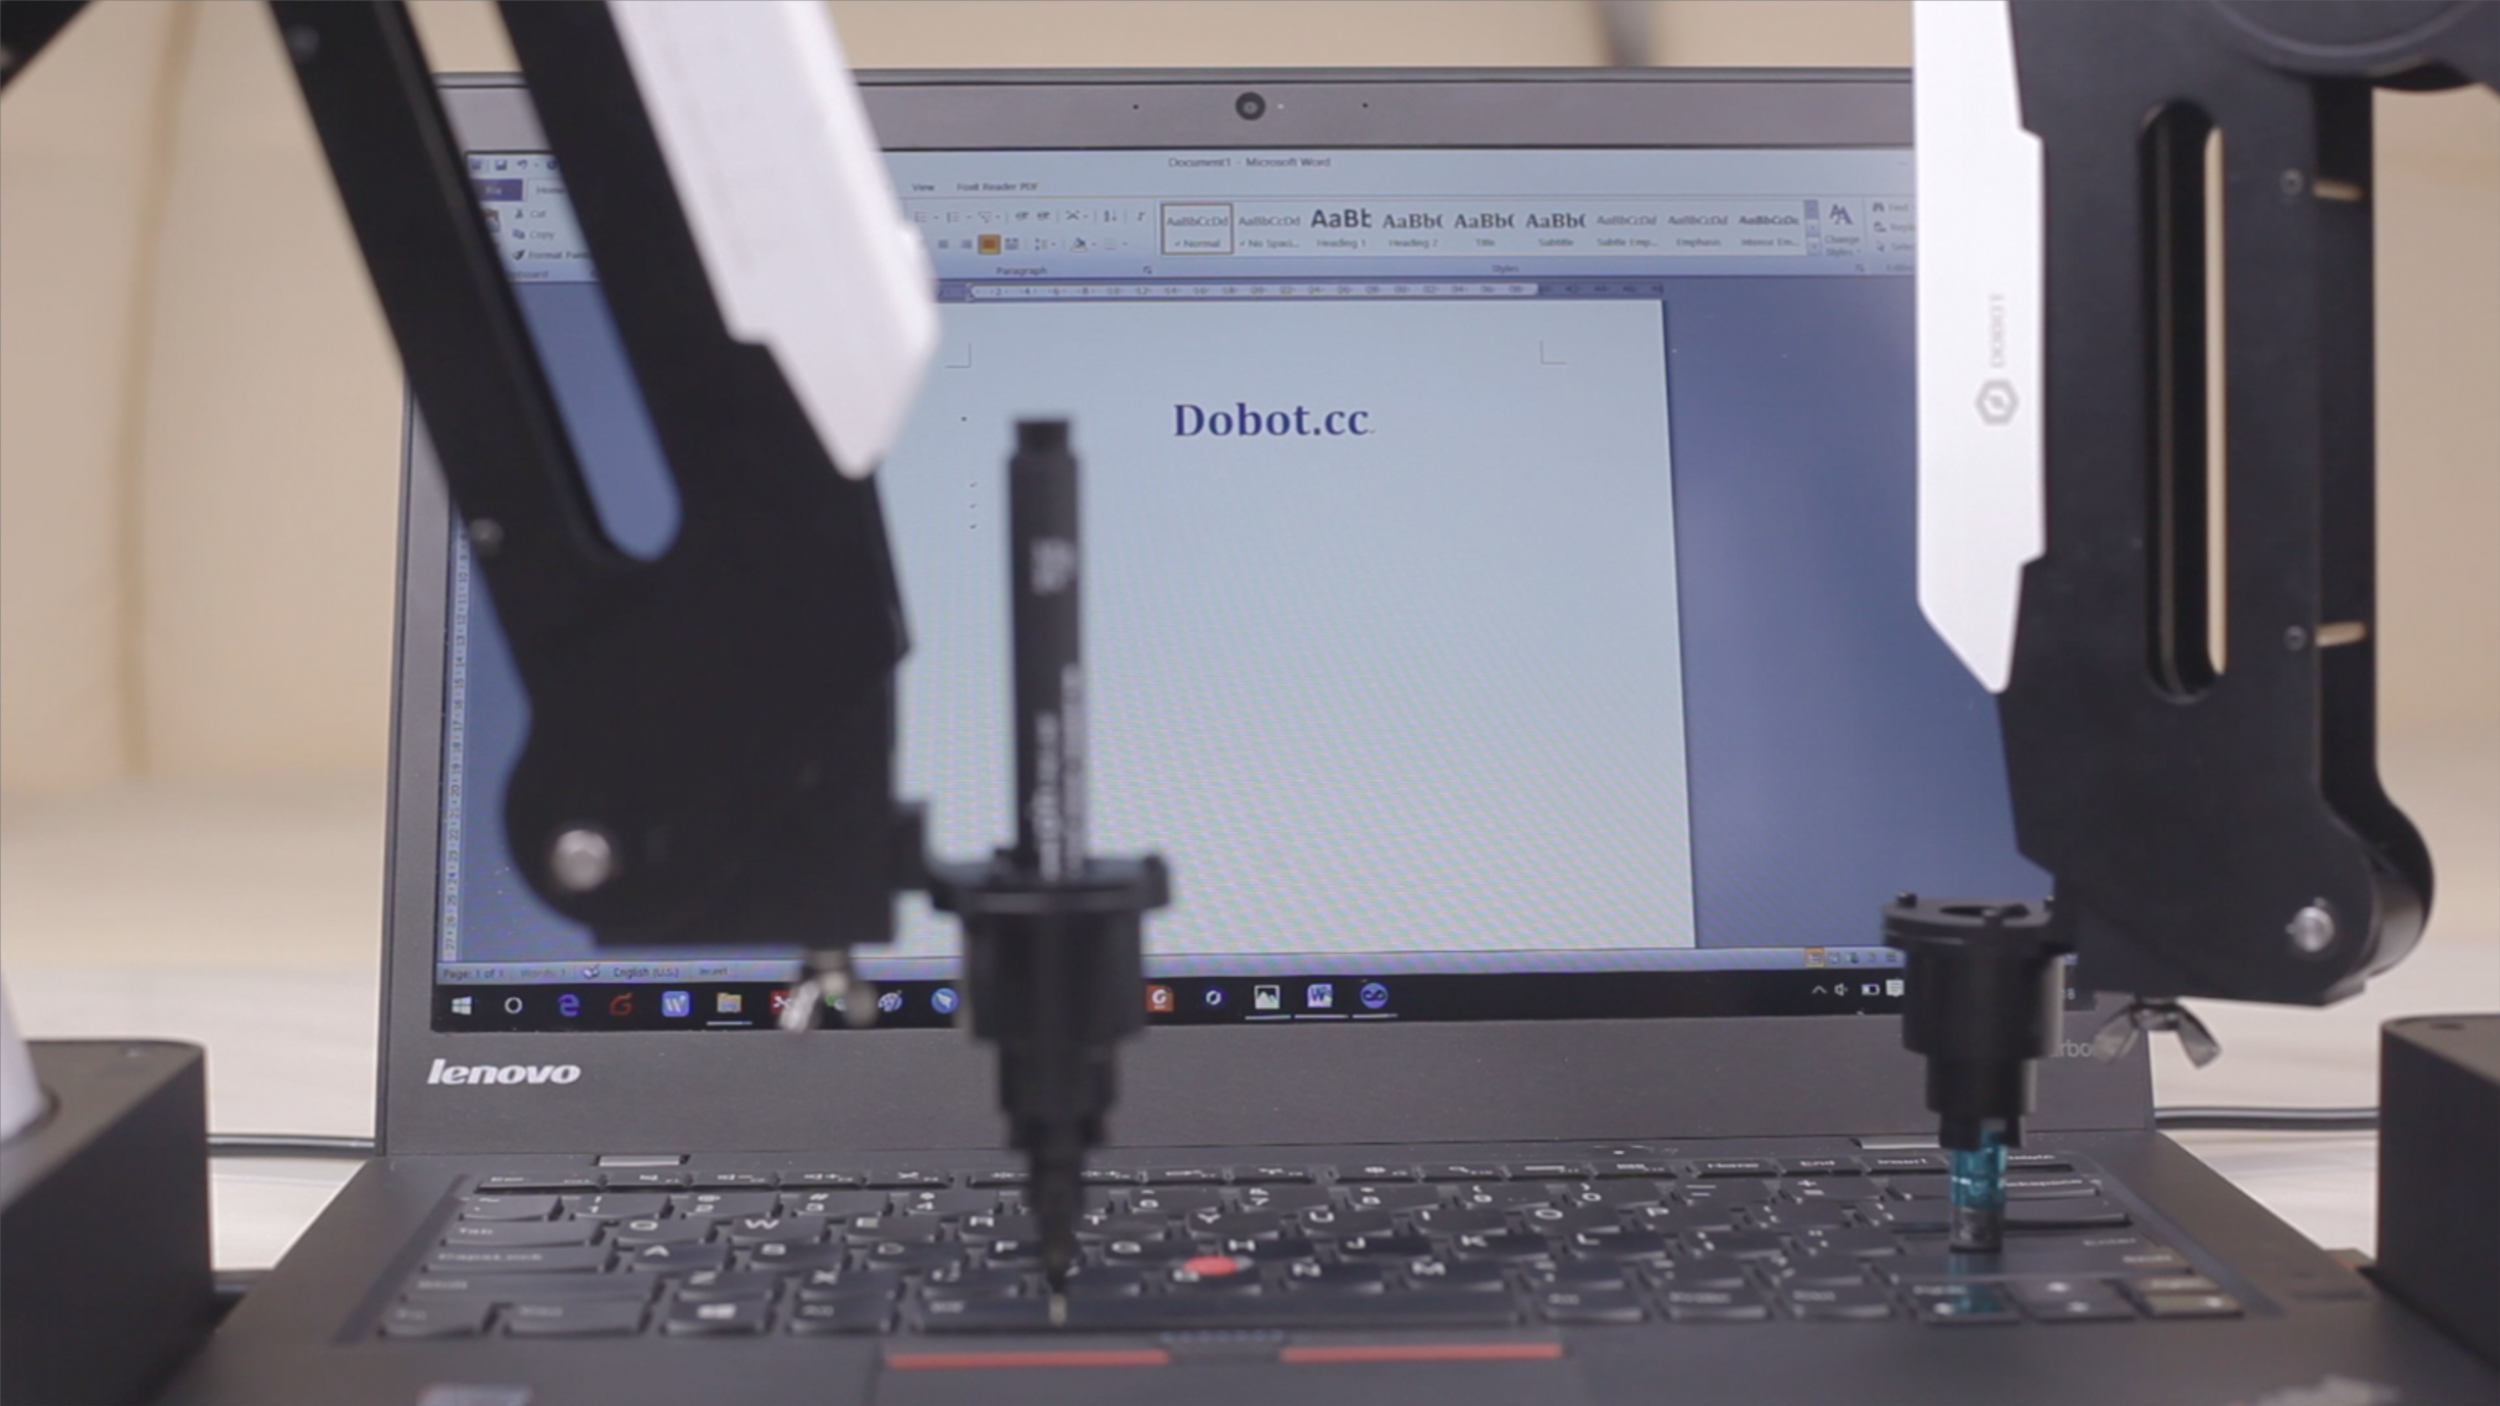 Operation software - DobotStudio made controlling the rebotic arm really easy as it has integrated many features to the software. It contains a whole set of parameters for you to costomize so you can control the robotic arm without any coding.